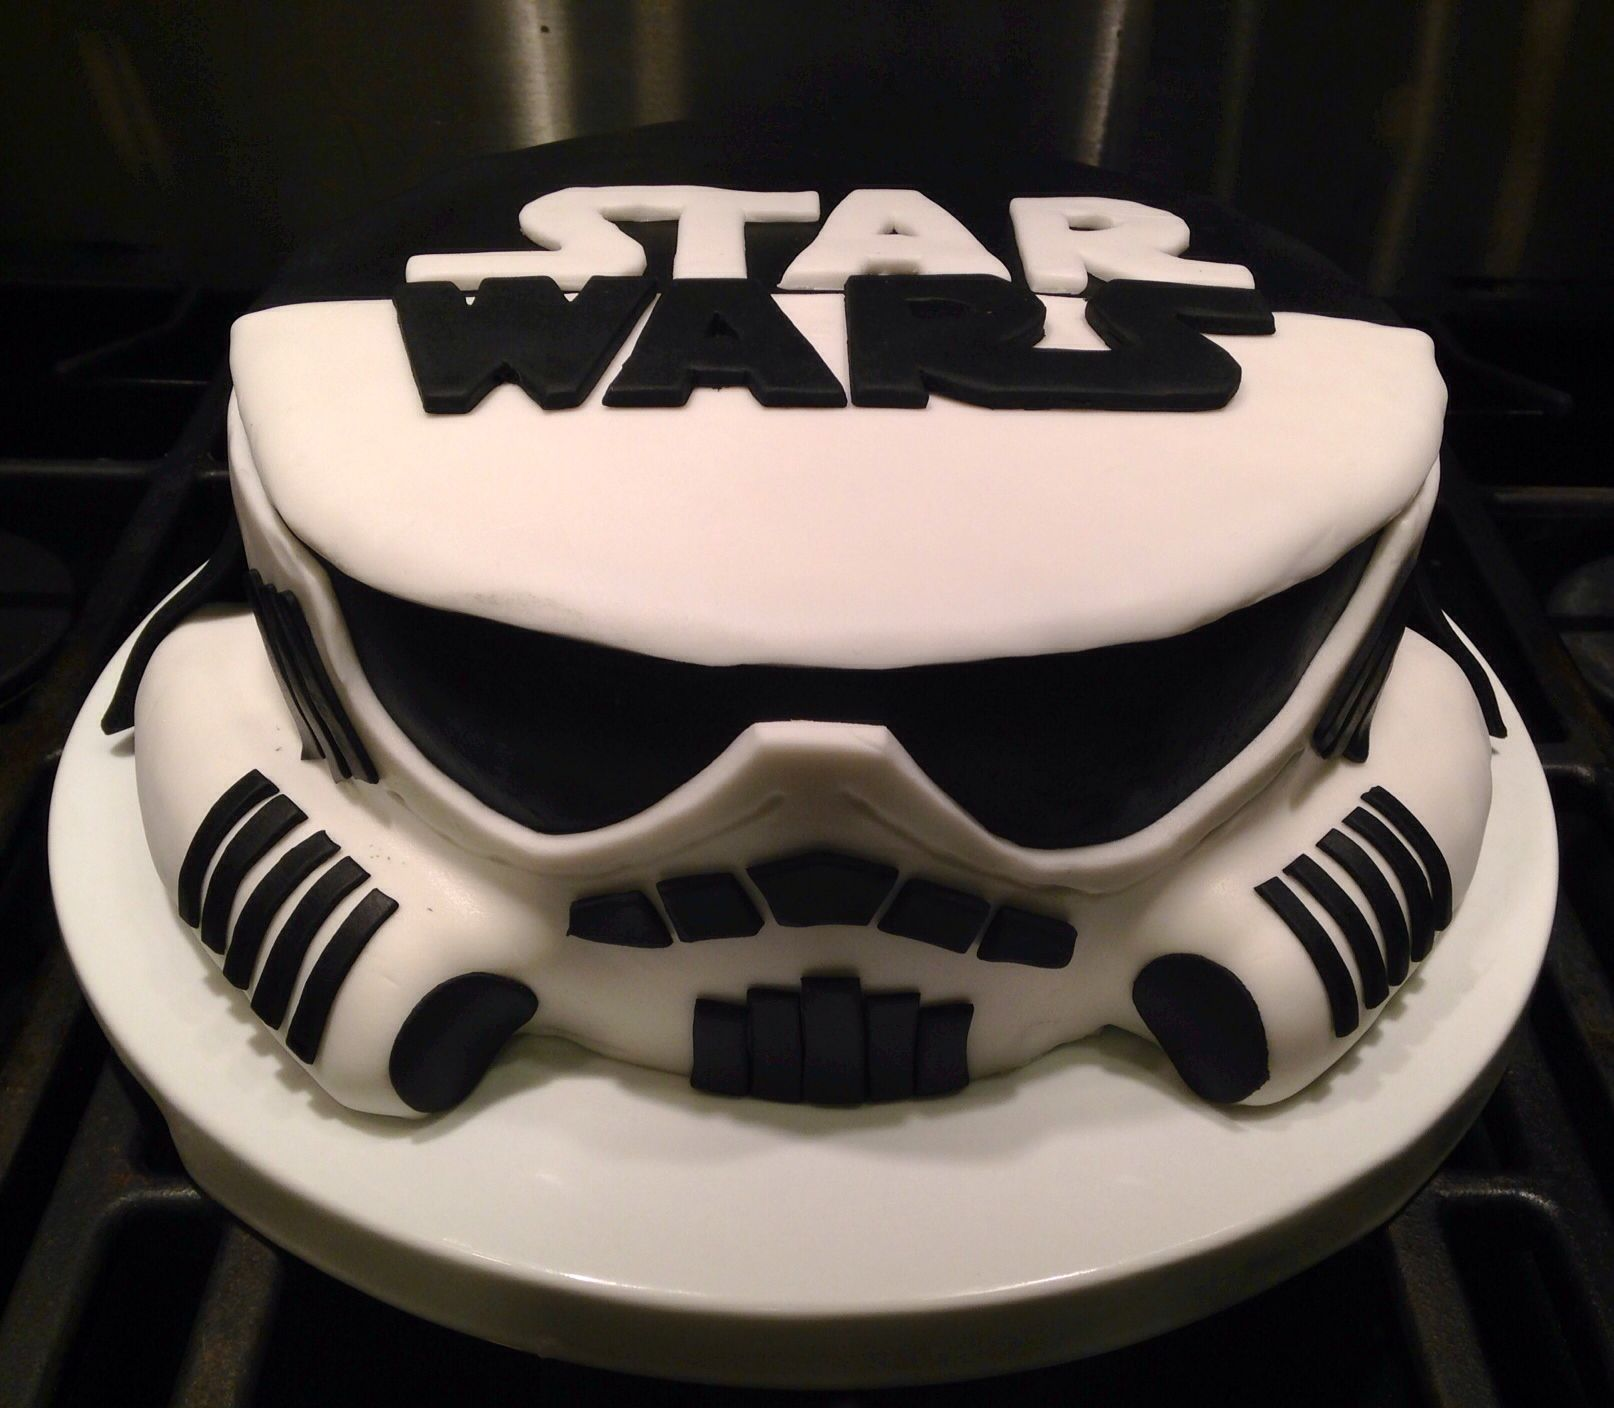 star wars stormtrooper and darth vader cake cakes cakes and more cakes pinterest cake. Black Bedroom Furniture Sets. Home Design Ideas